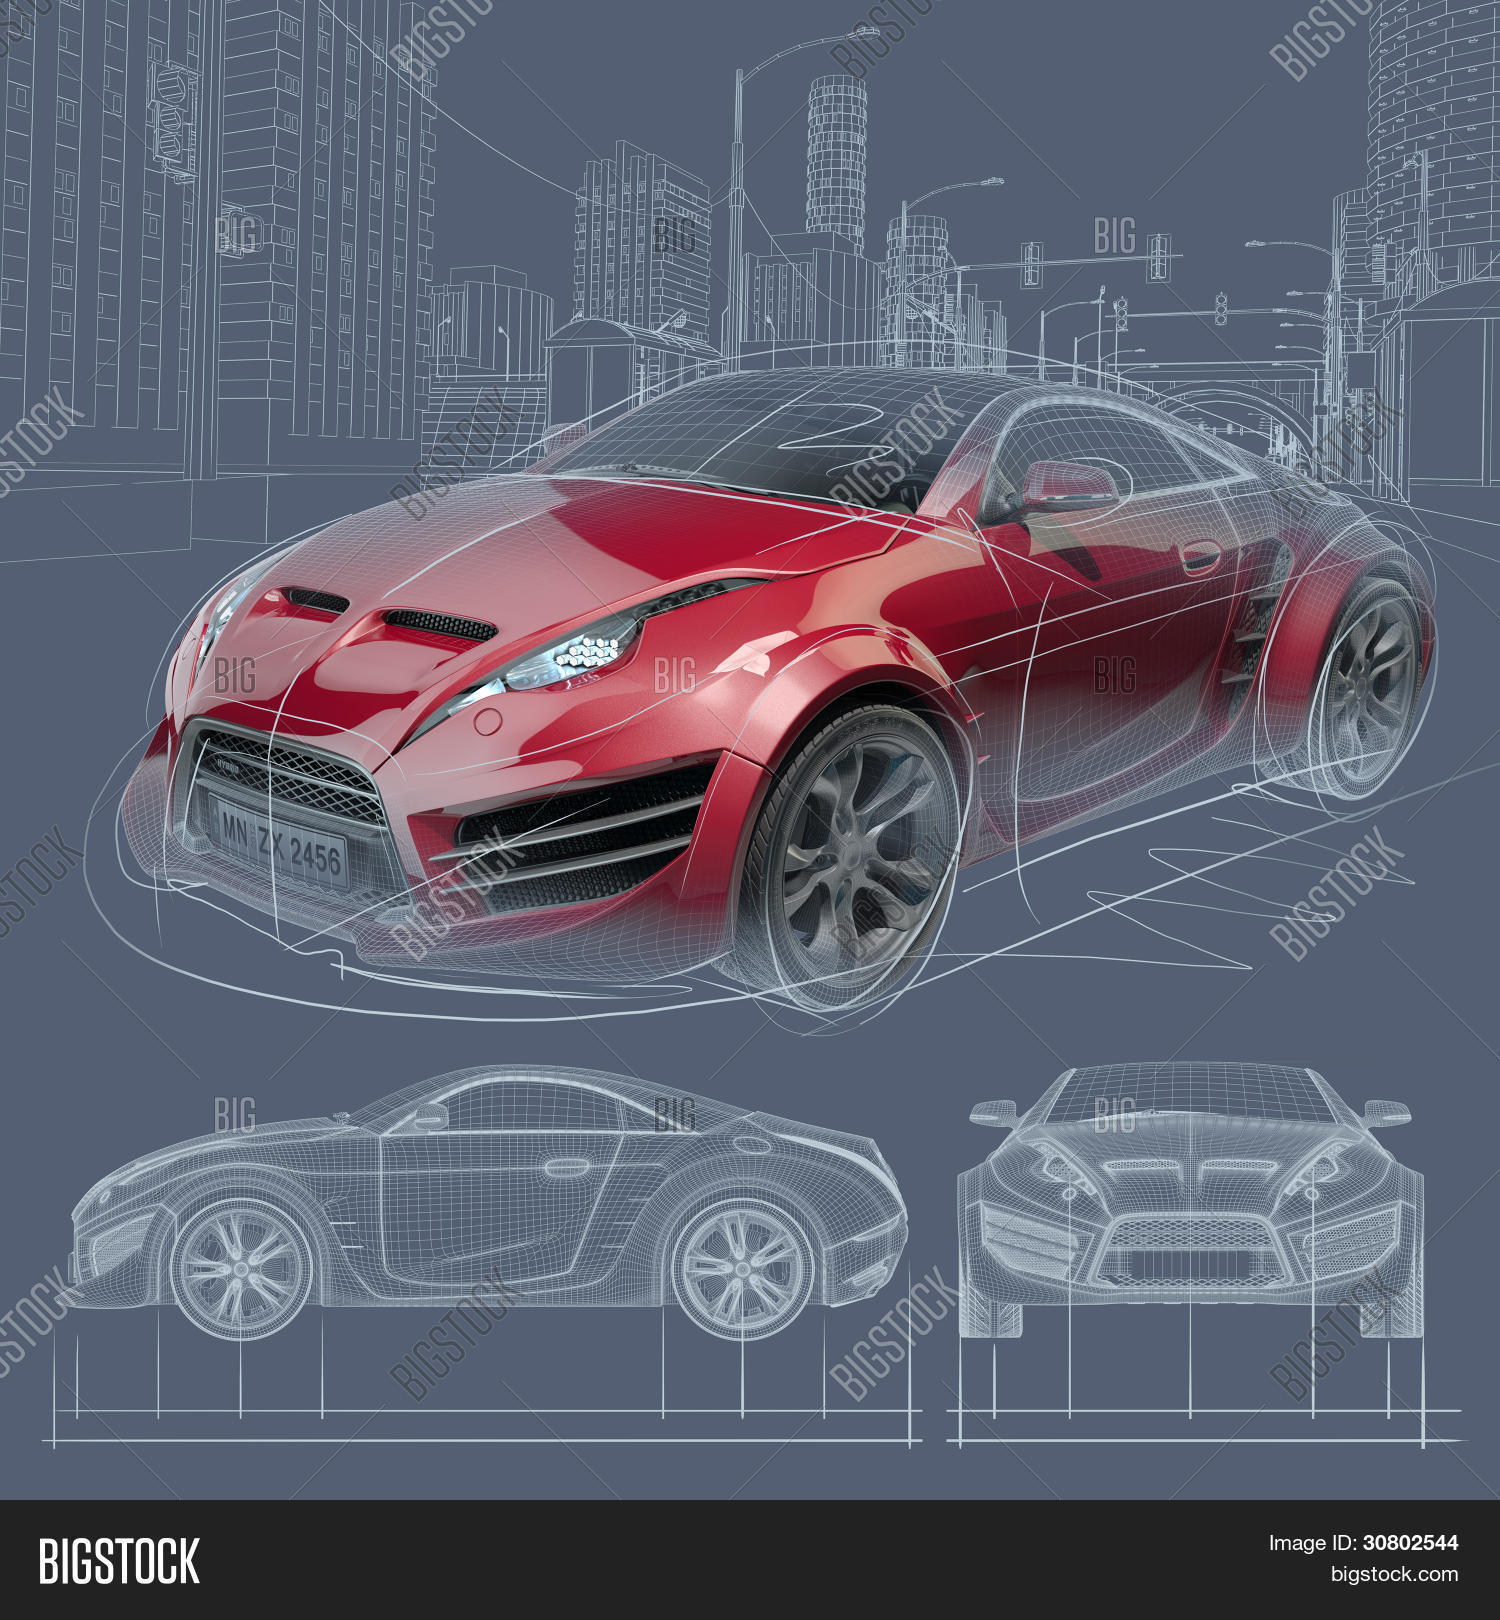 Sports car blueprint image photo free trial bigstock sports car blueprint original car design malvernweather Choice Image